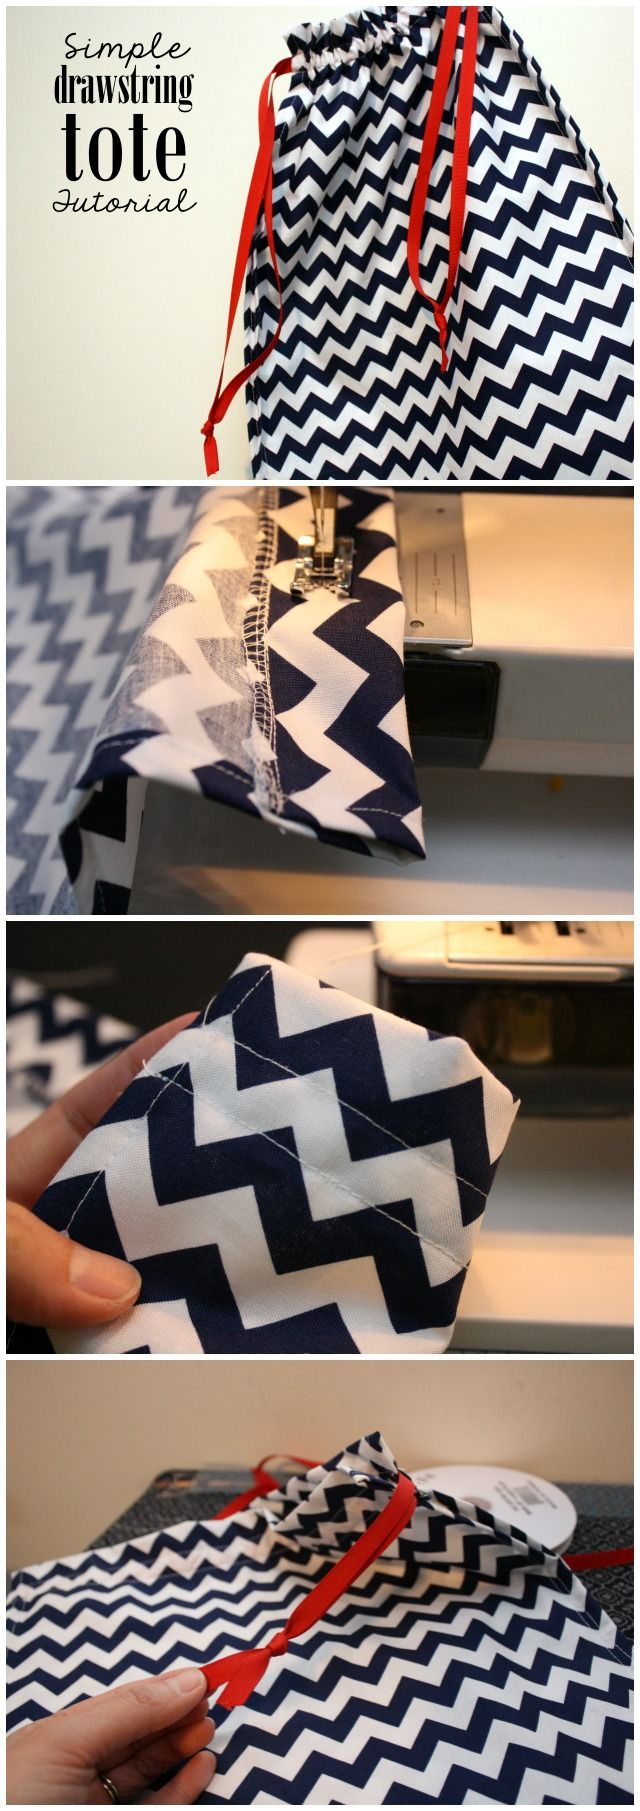 Great beginner sewing project. Easy drawstring tote tutorial